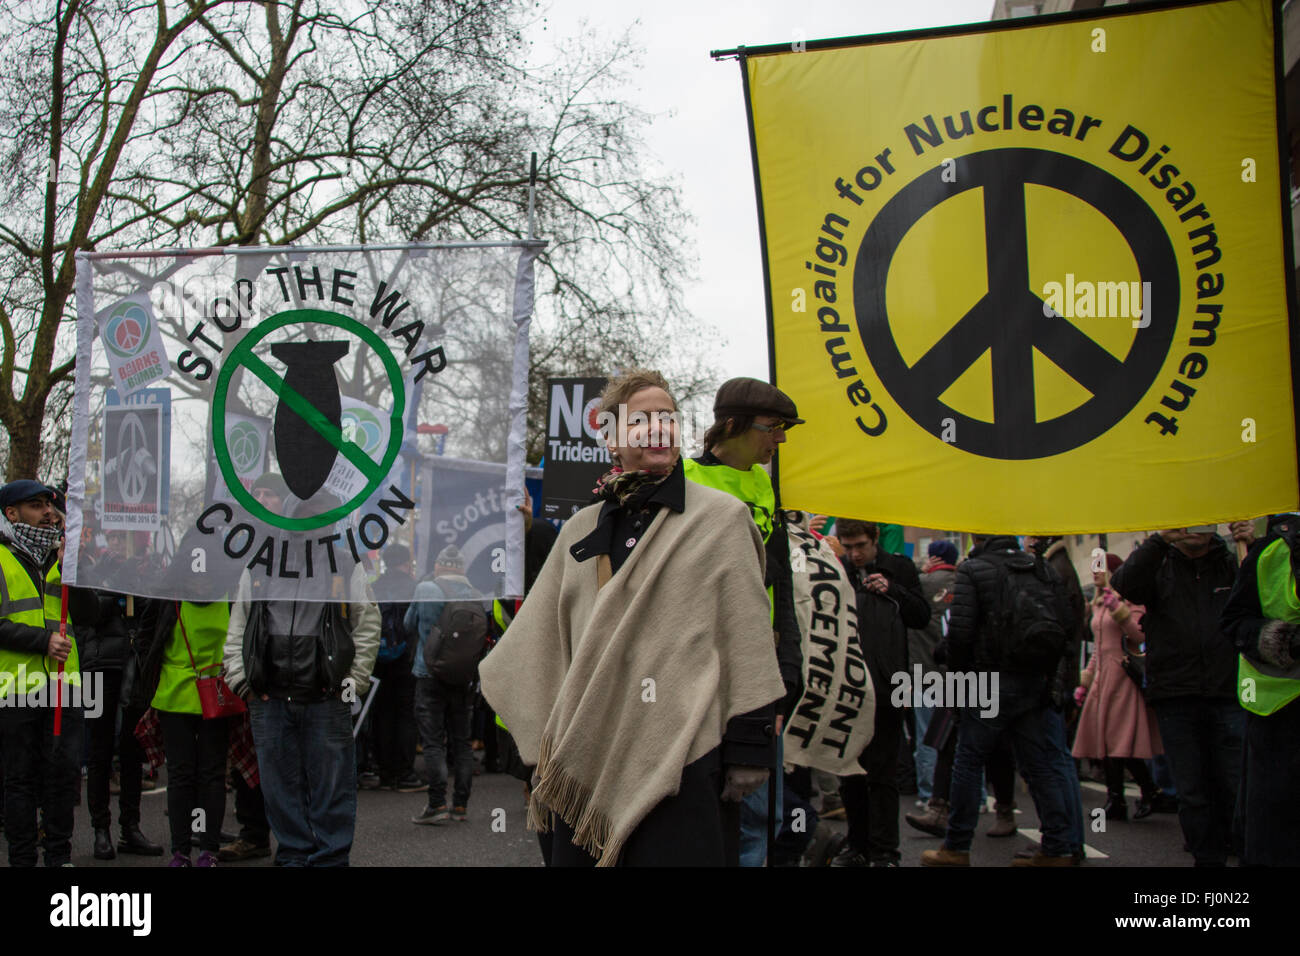 London, England. 27 Feb 2016 Kate Hudson, General Secretary of the Campaign for Nuclear Disarmament (CND) and an - Stock Image